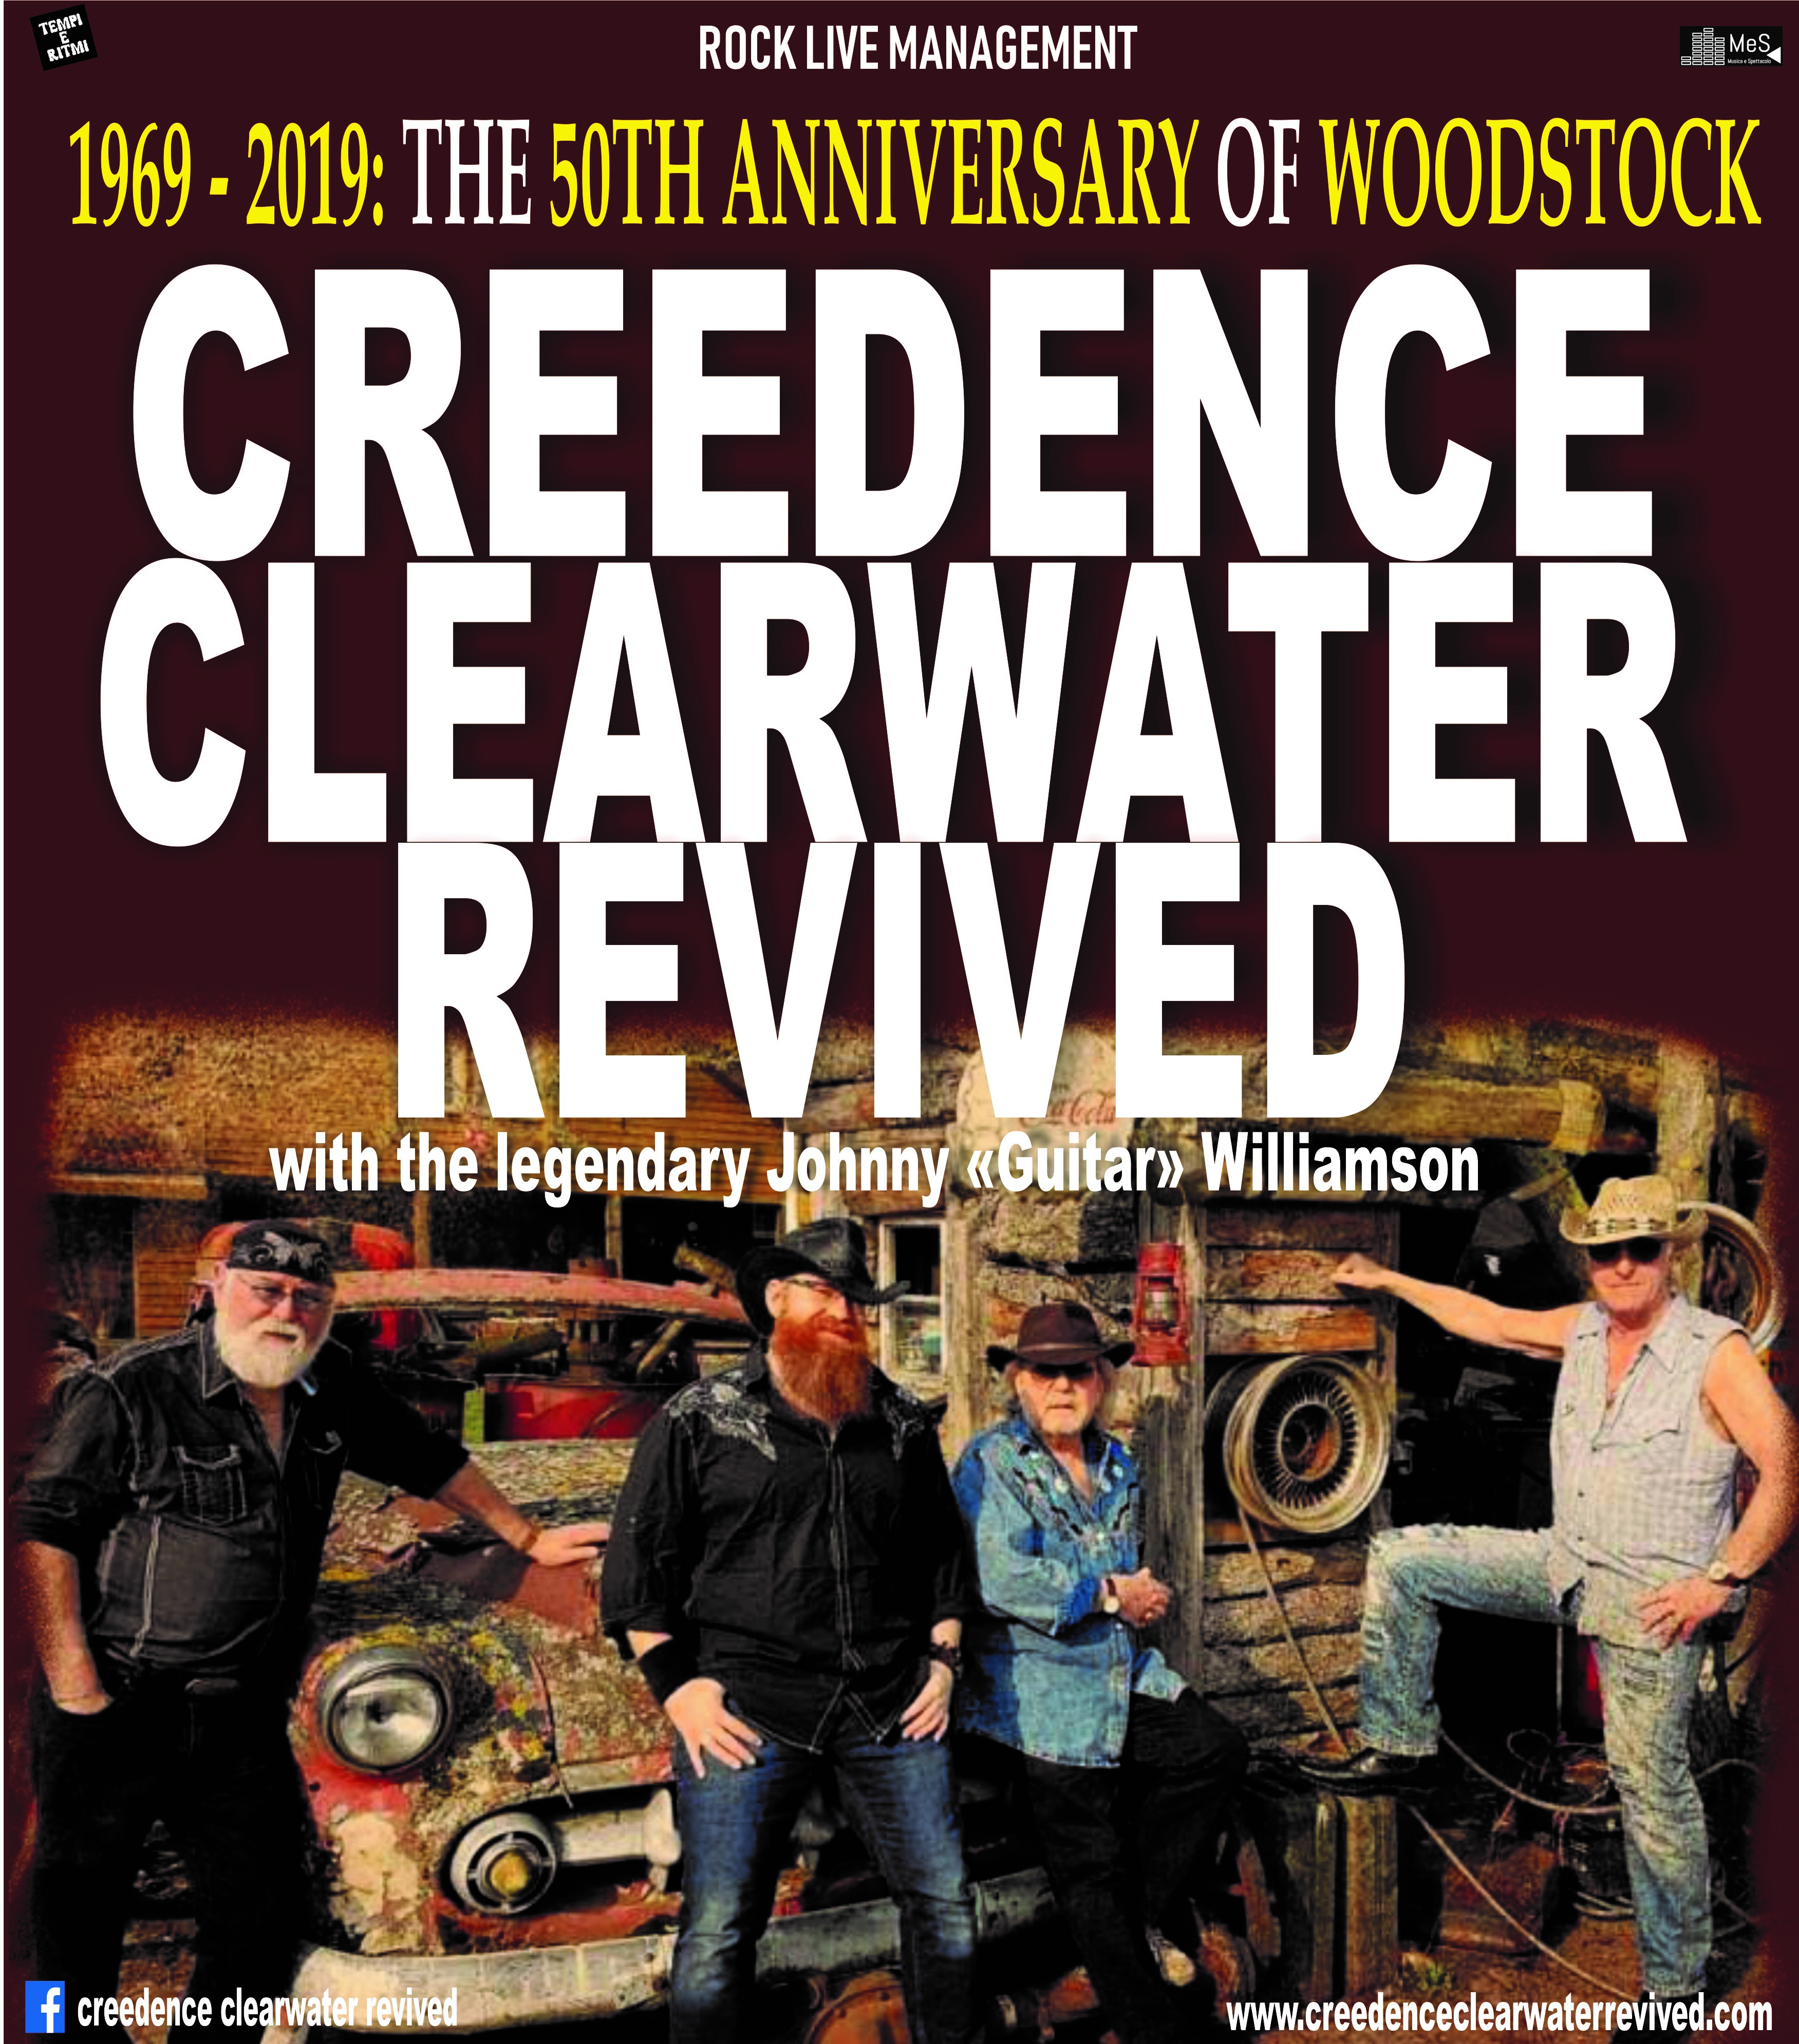 CREEDENCE CLEARWATER REVIVED -